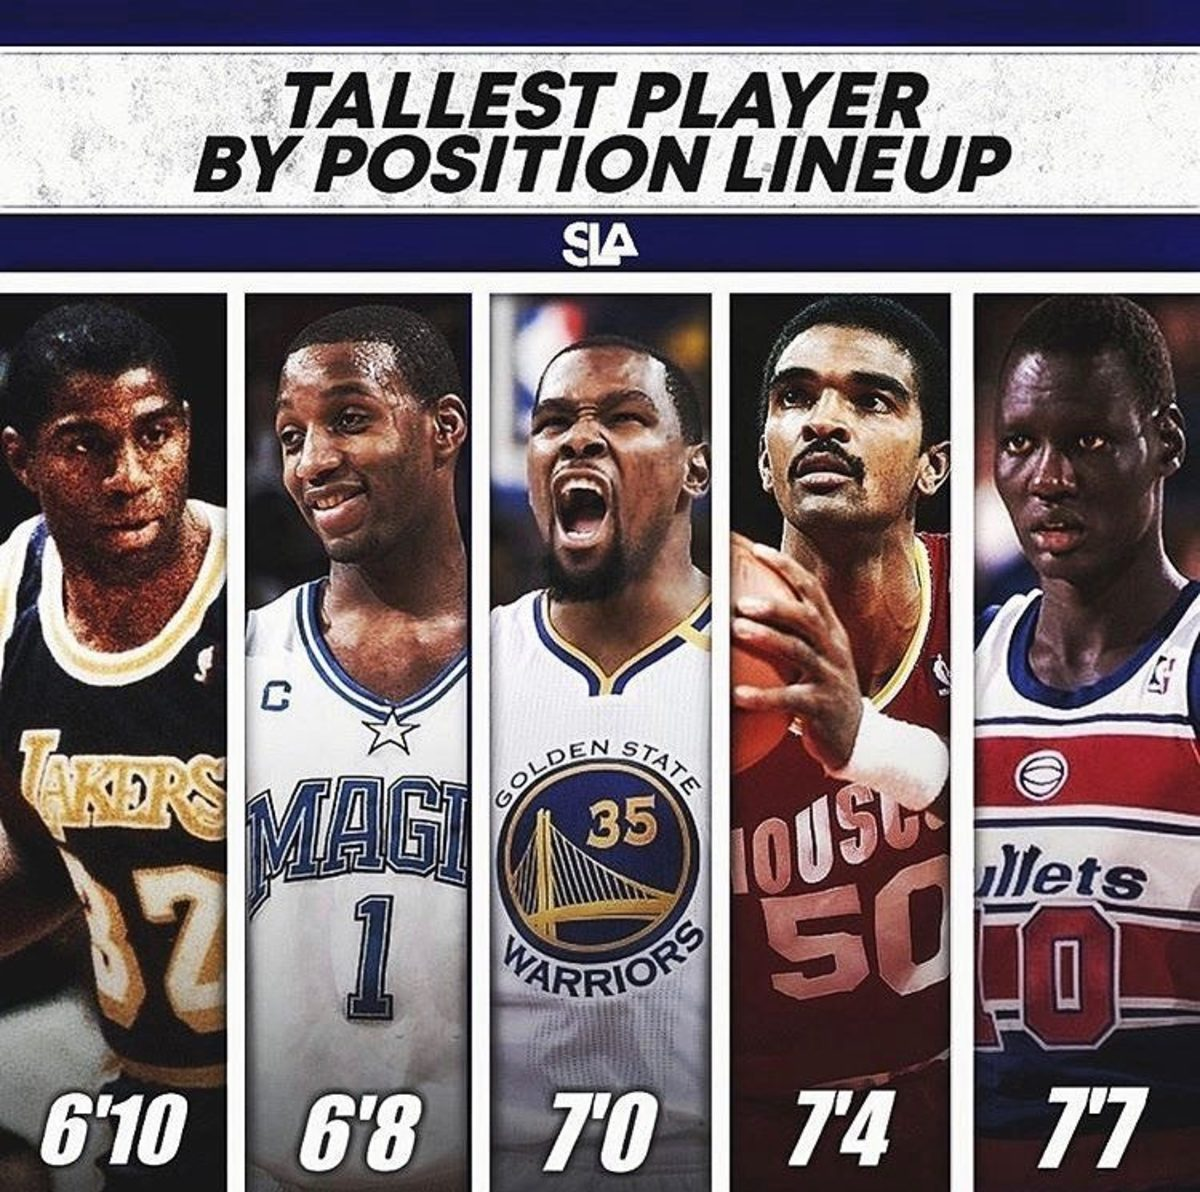 Tallest NBA Player By Position Lineup